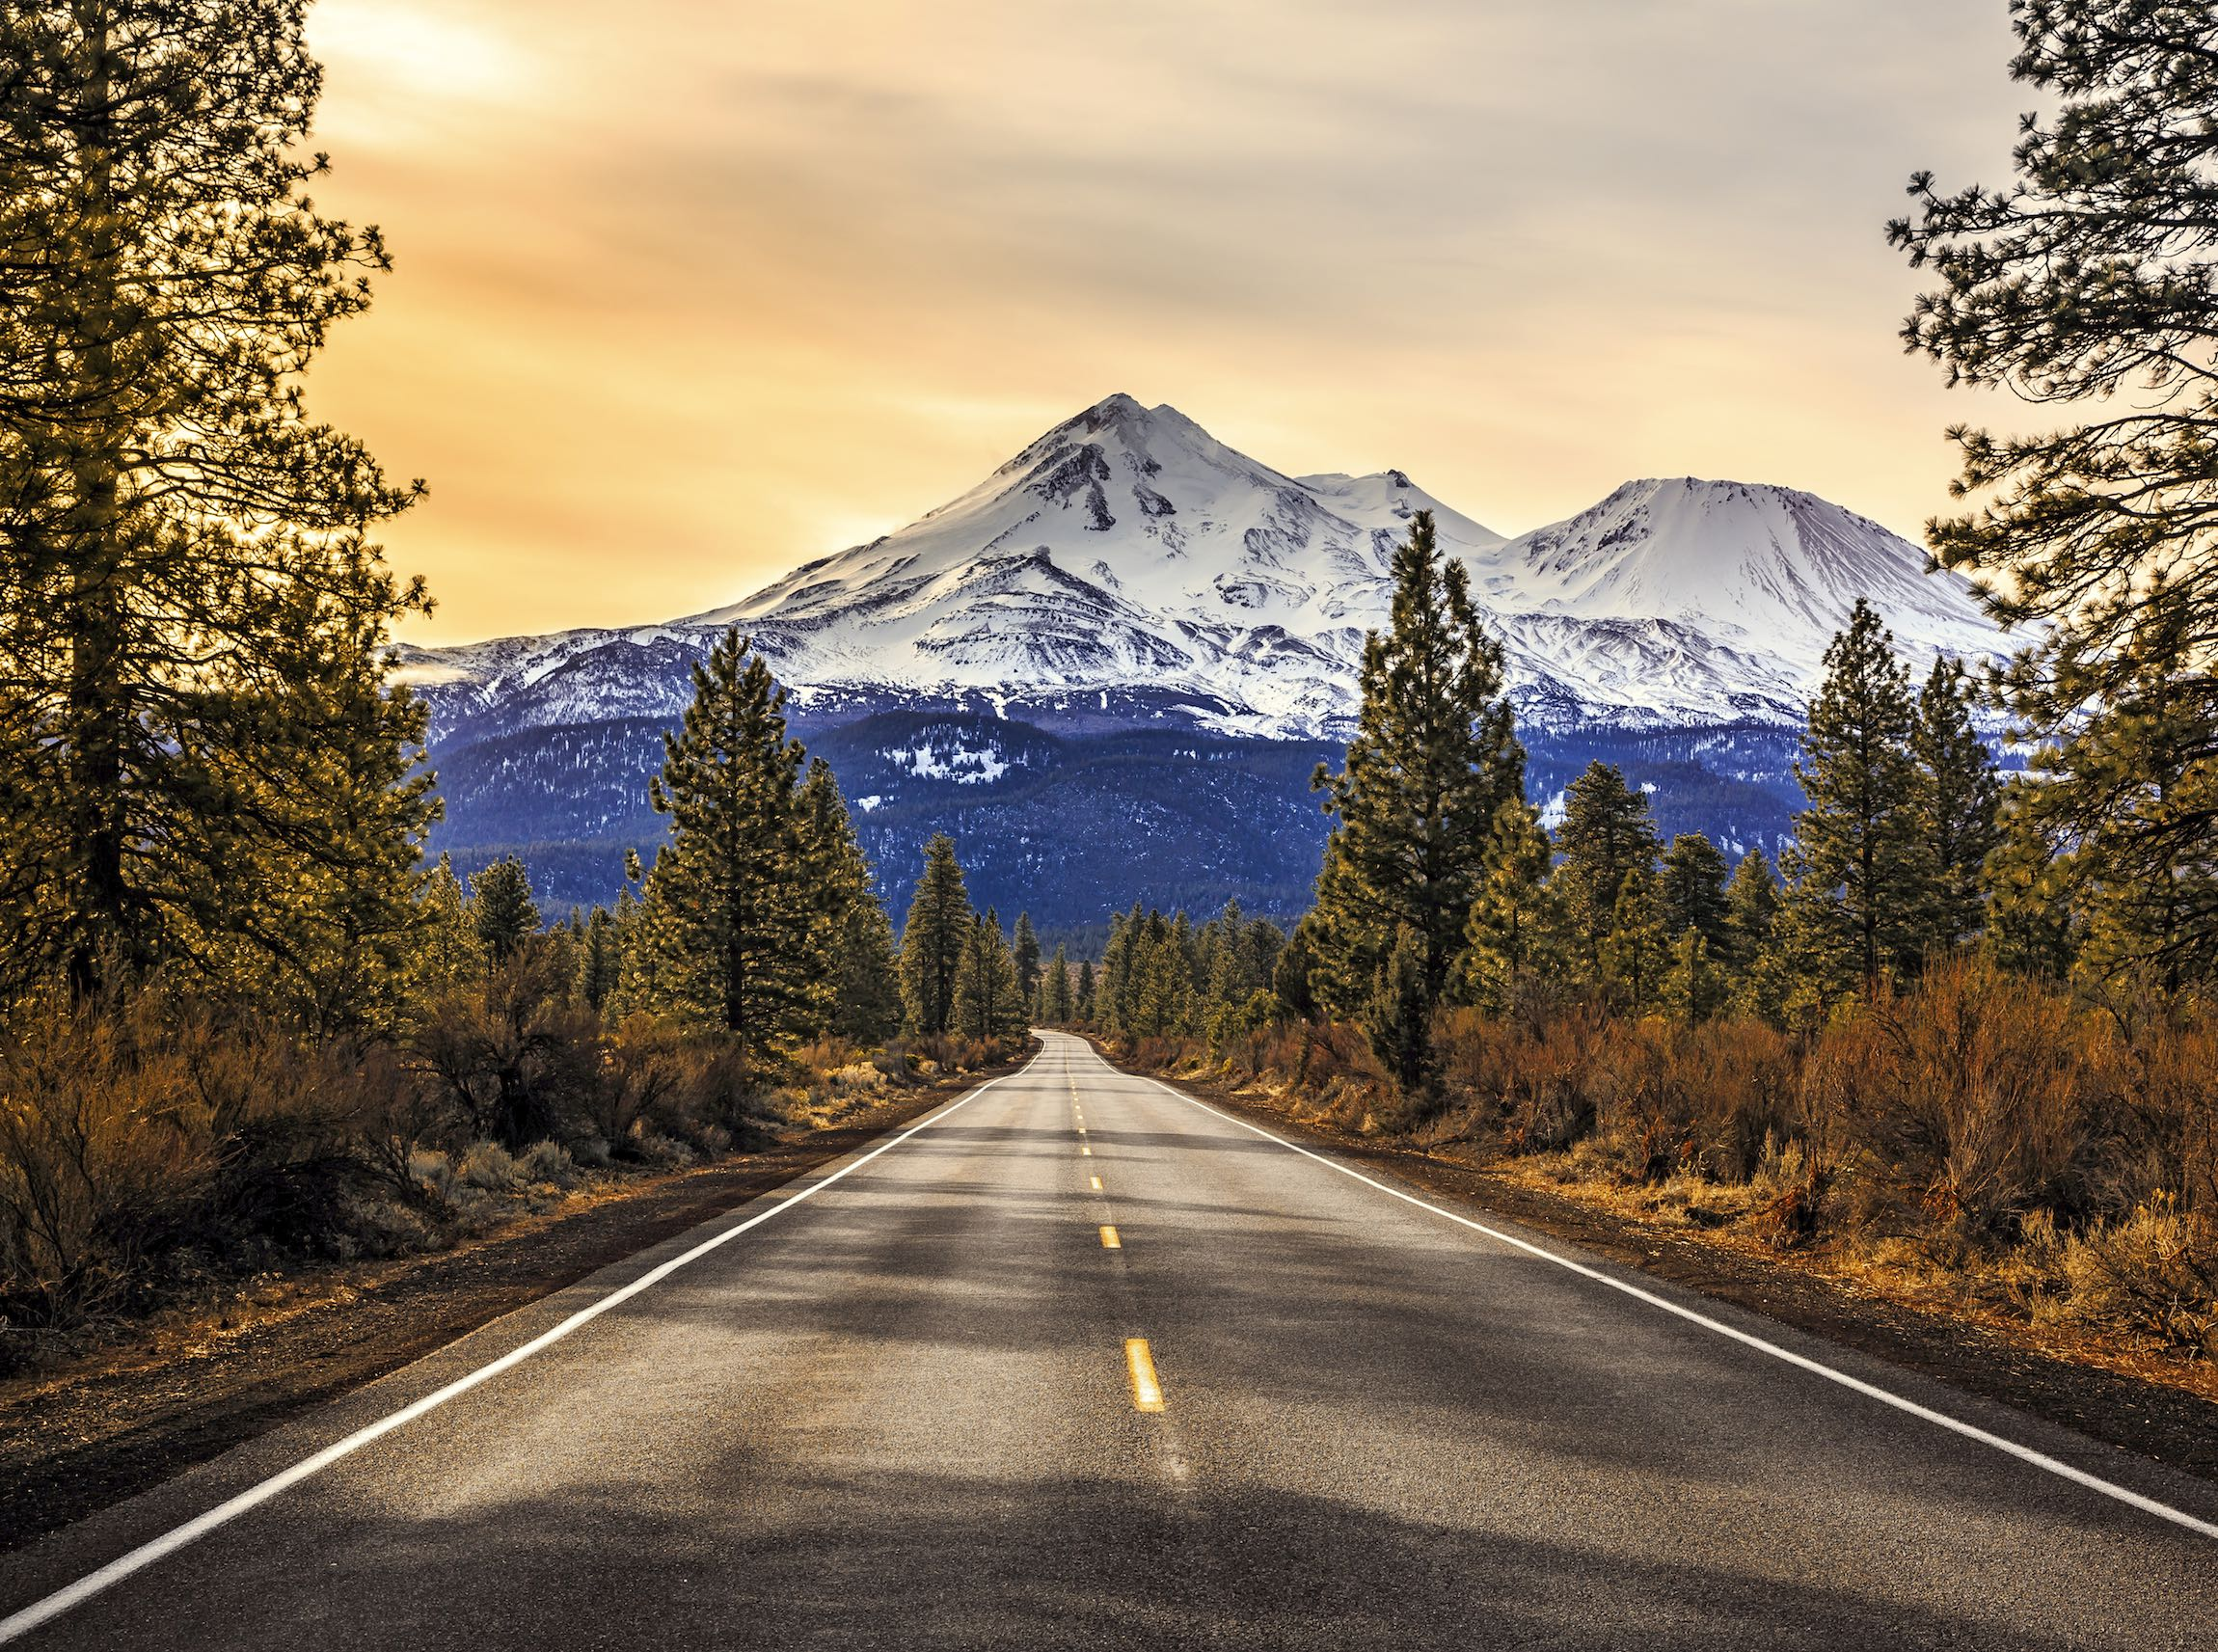 Siskiyou Scenic Byway